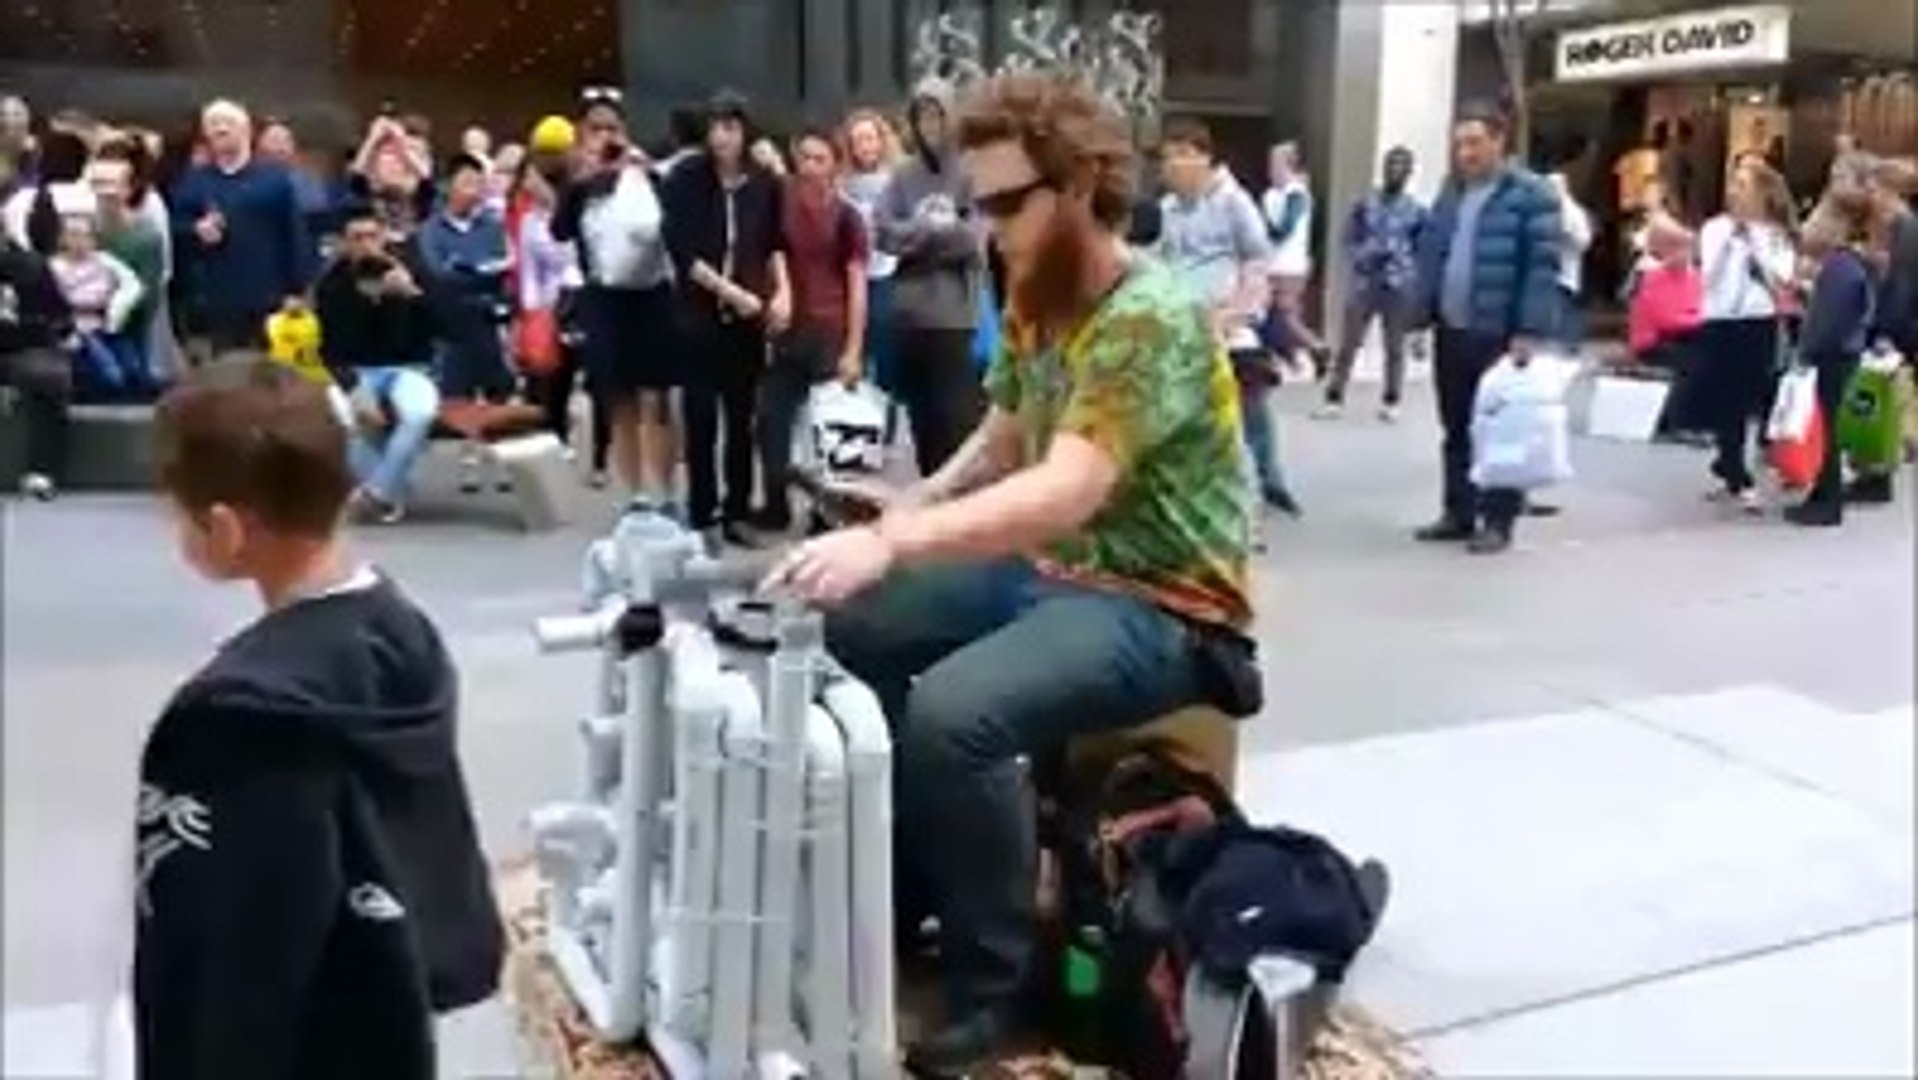 Street Musician - Just Pipes and Flip Flops | Viral Video